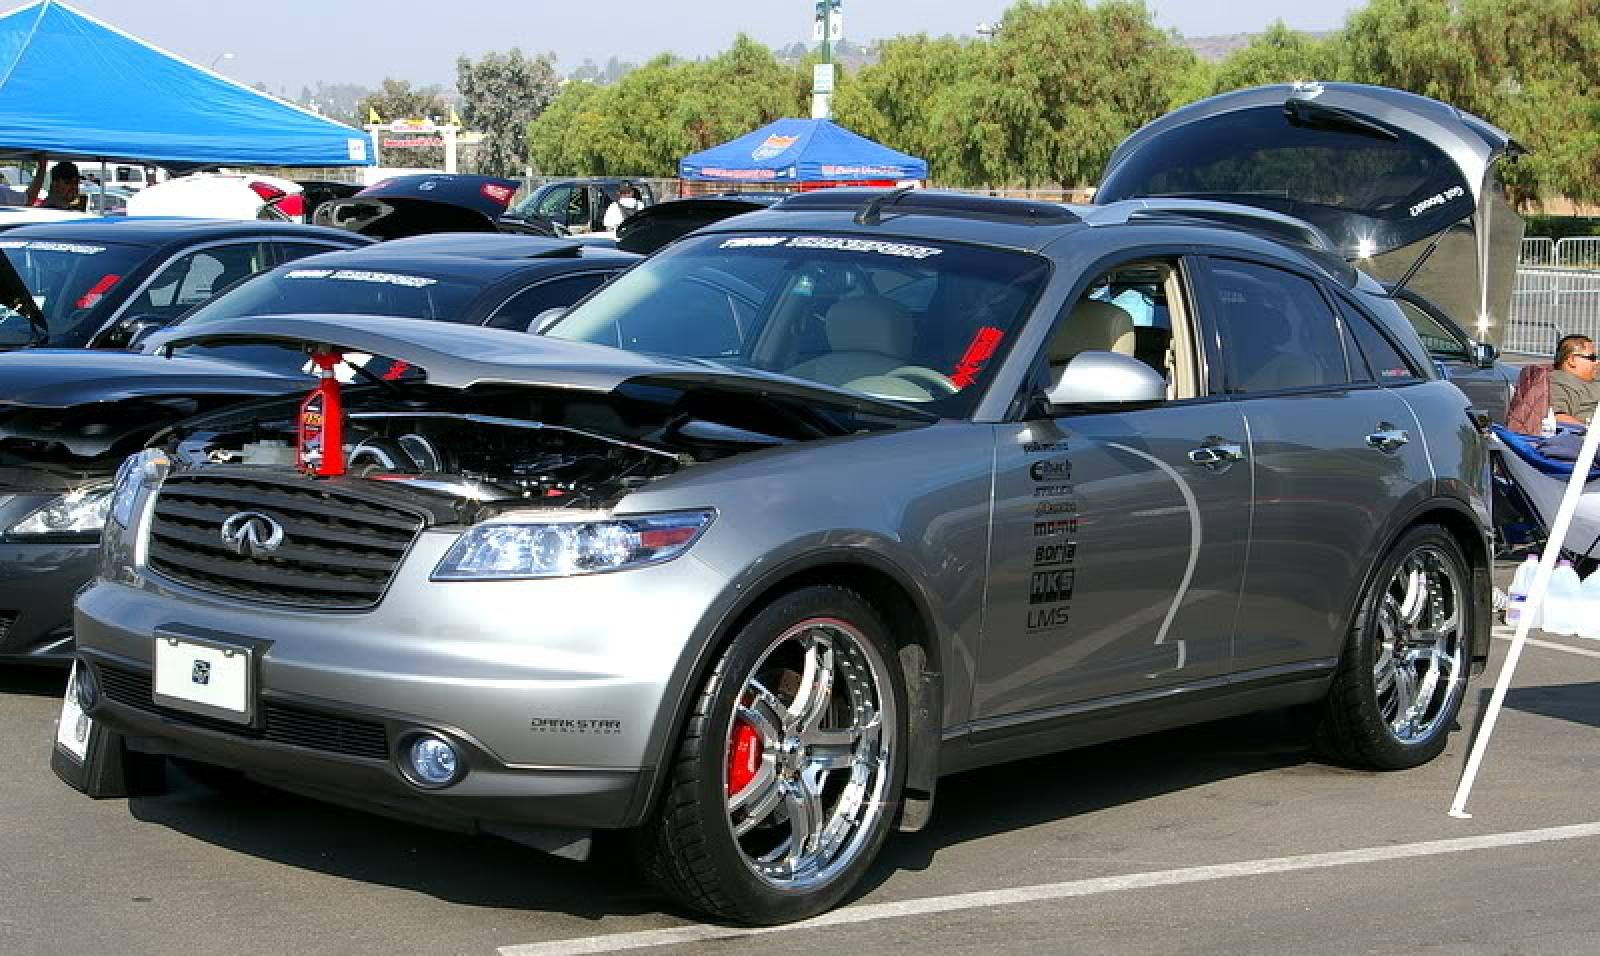 2004 infiniti fx35 custom images hd cars wallpaper 2004 infiniti fx35 custom image collections hd cars wallpaper 2004 infiniti fx35 custom image collections hd vanachro Image collections